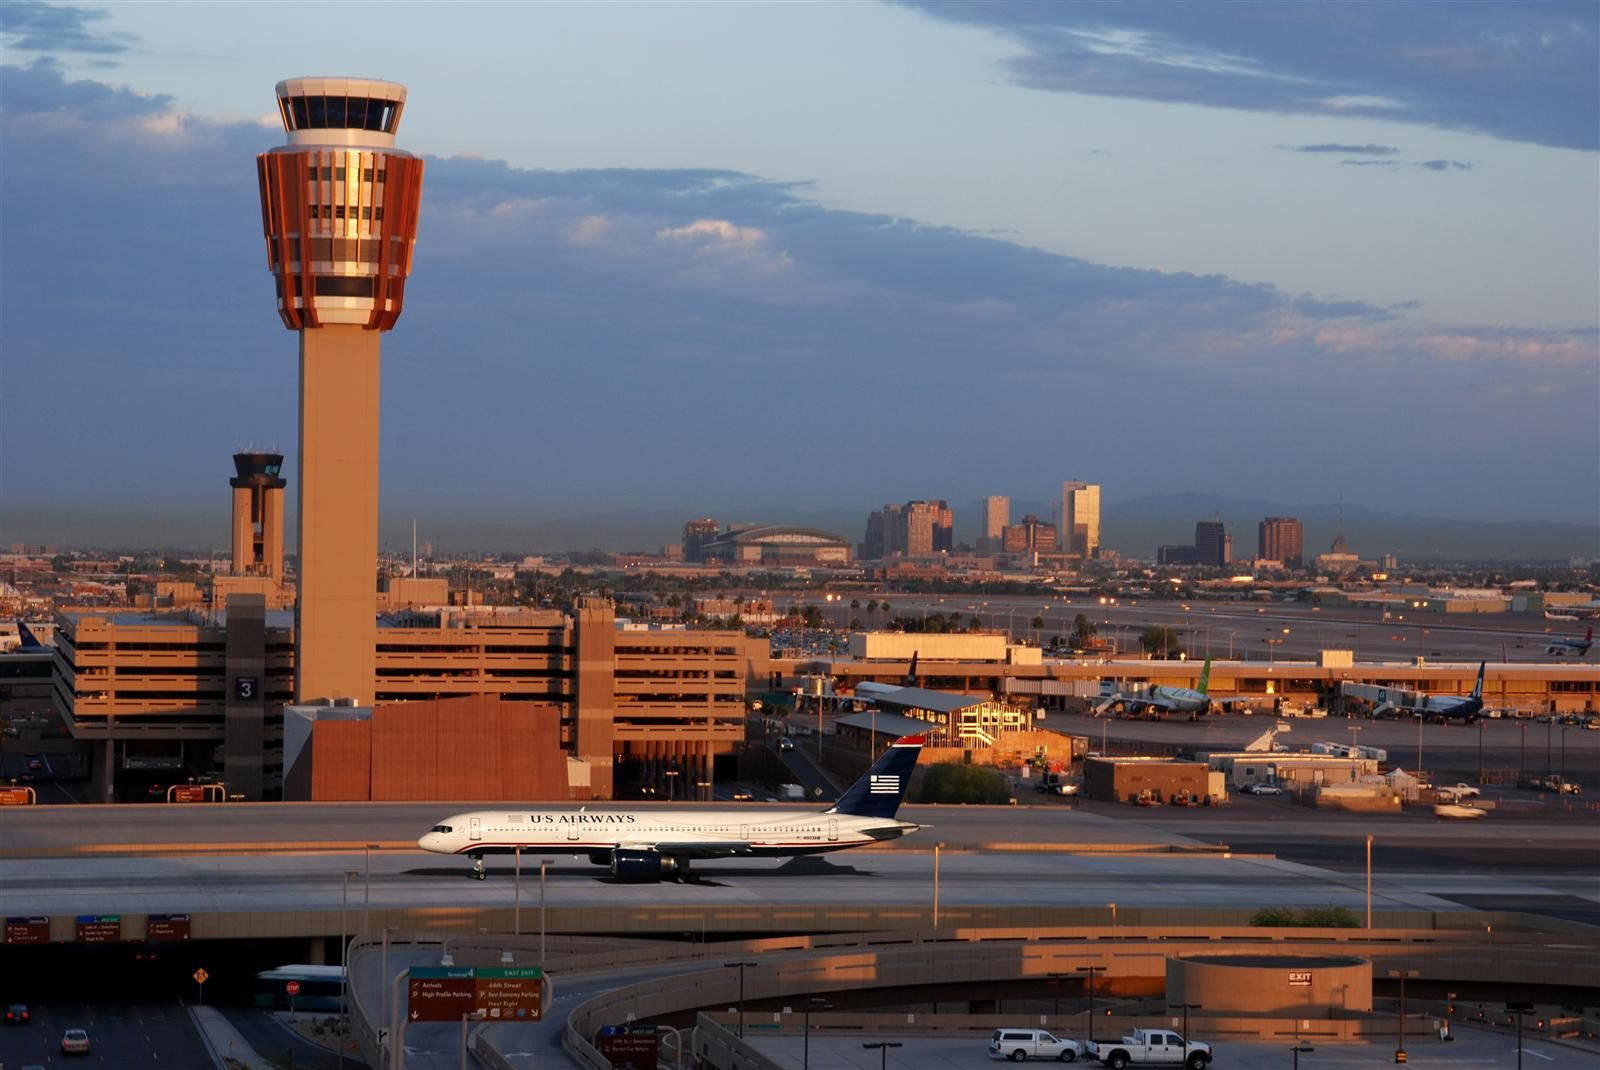 Awesome work by HDR,Inc. Sky Harbor Taxiway Sierra